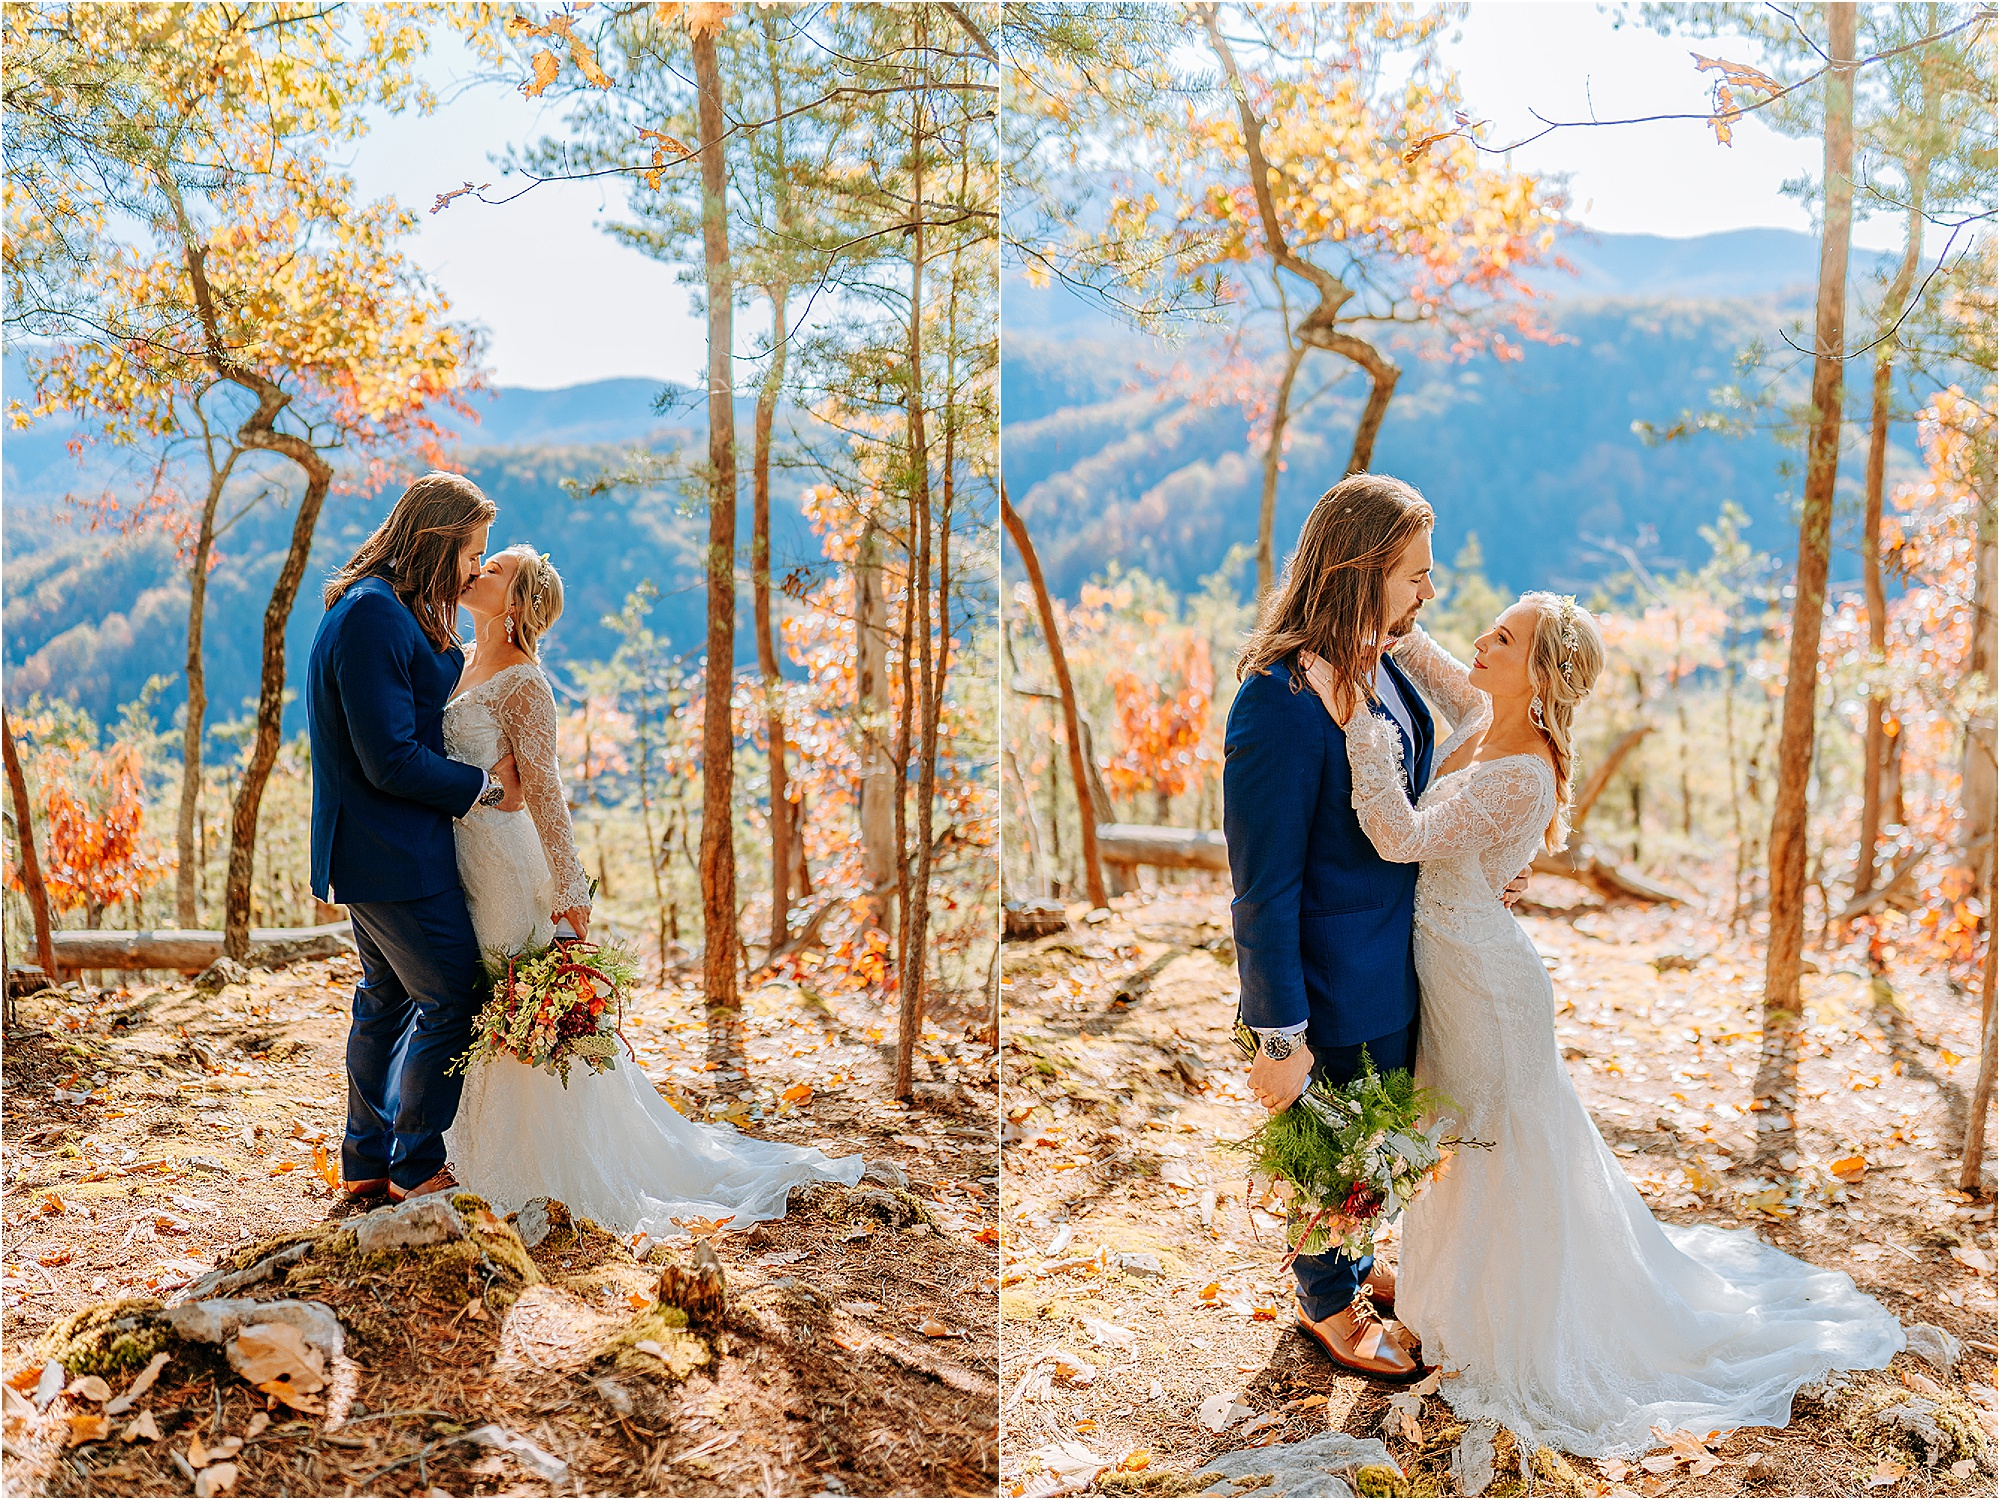 bride and groom kissing in forest on mountainside